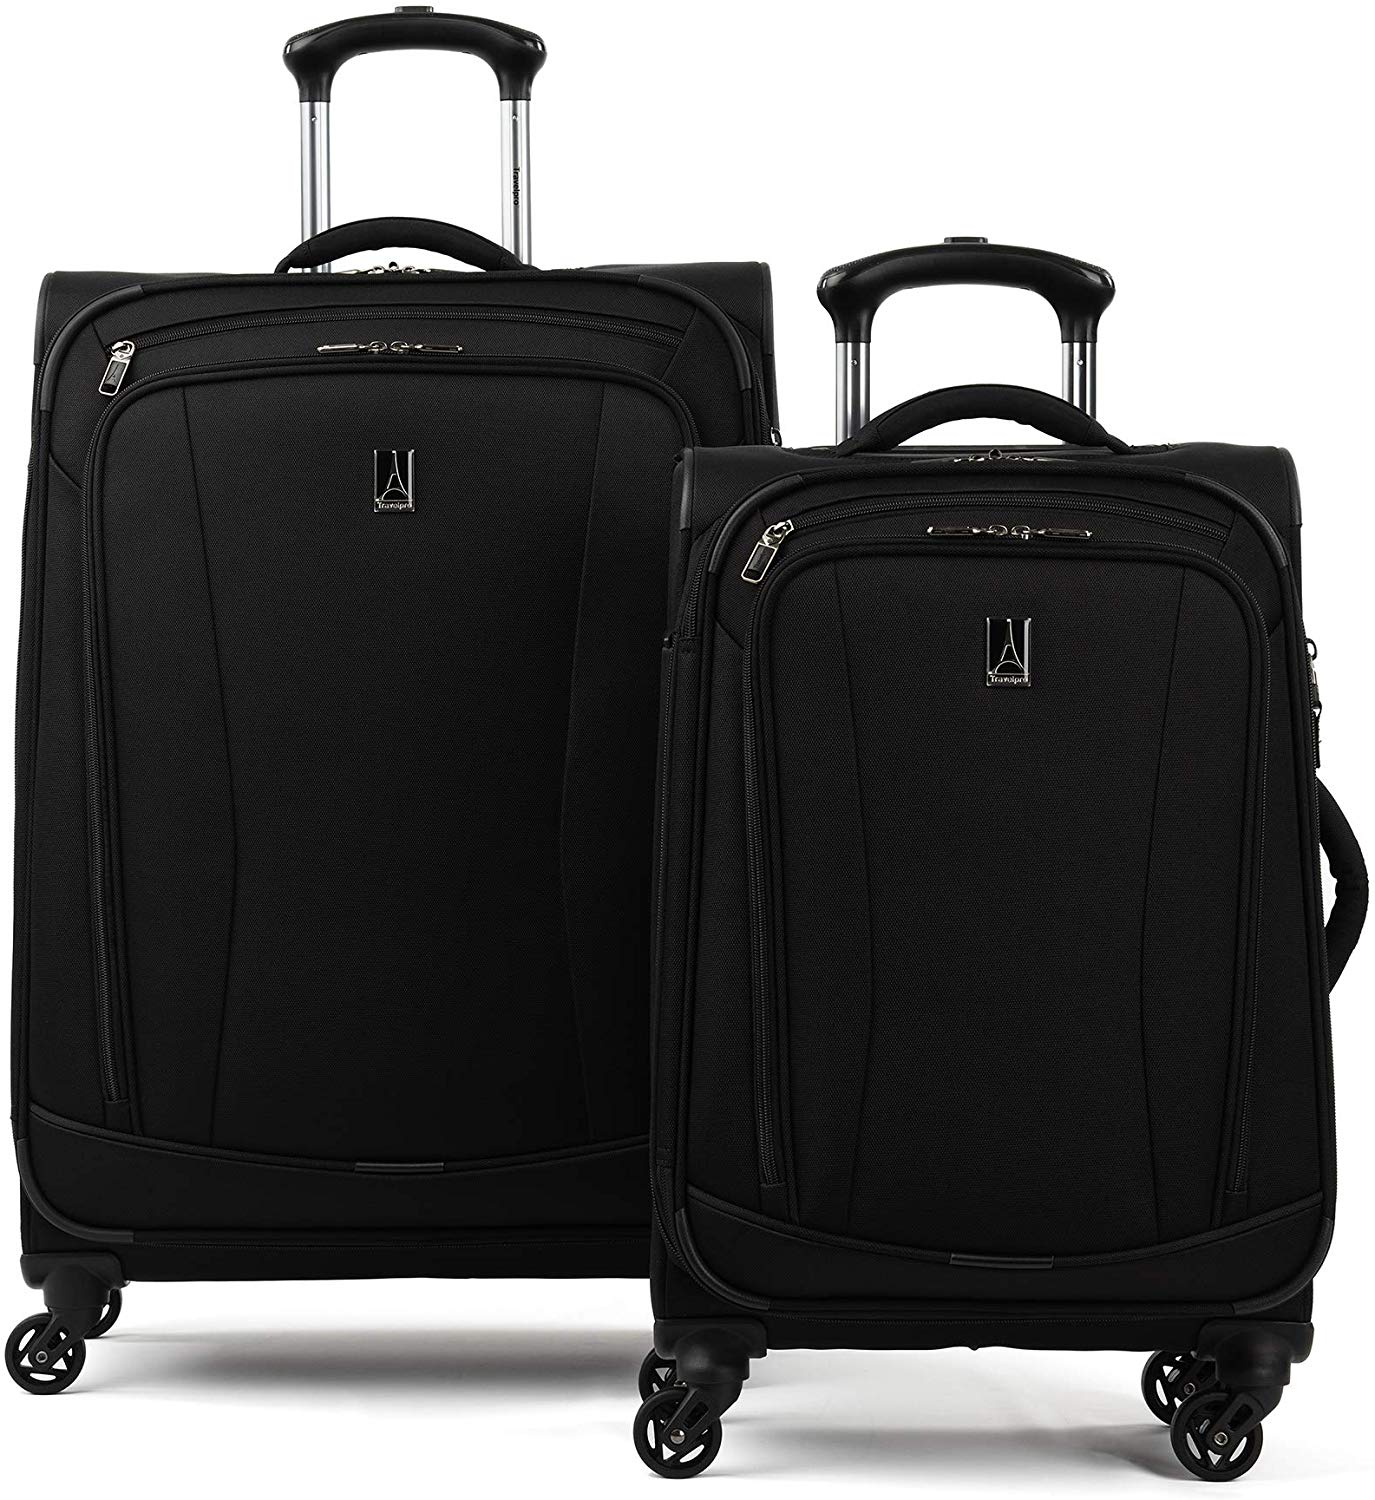 1. Travelpro TourGo 2 piece set